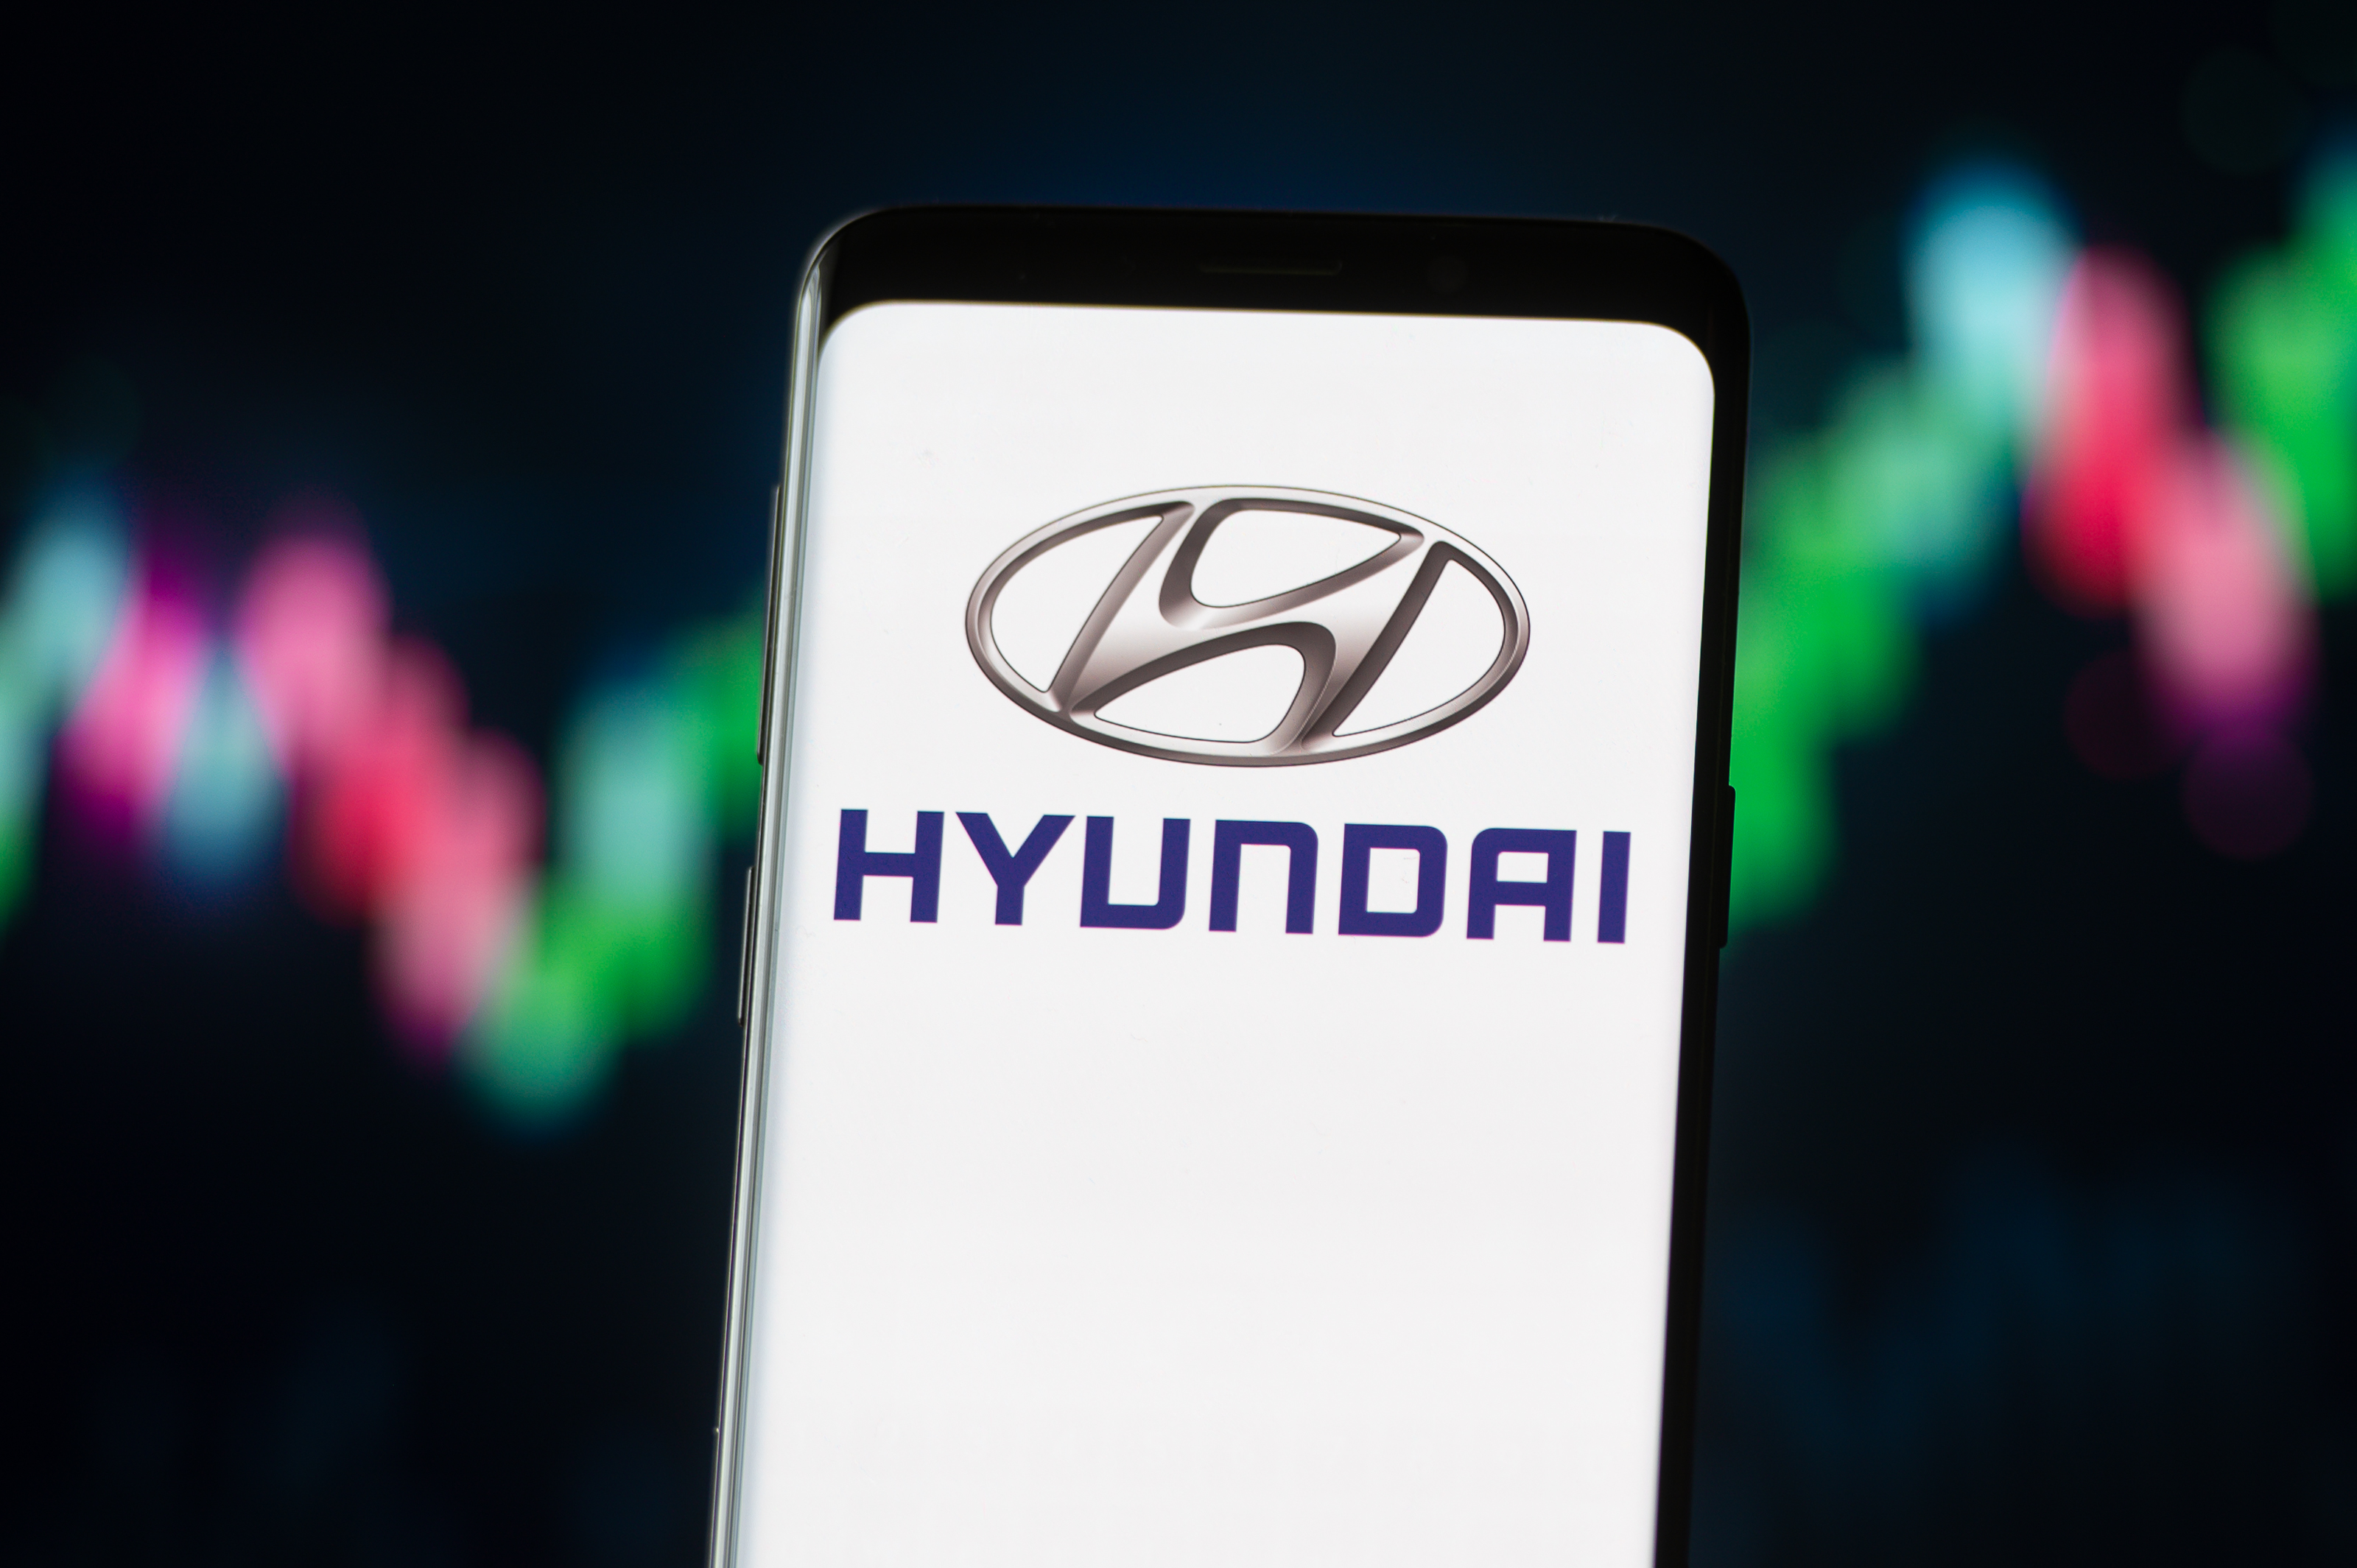 Super Bowl LV Commercials: Hyundai Breaks Streak, Won't Run an Ad